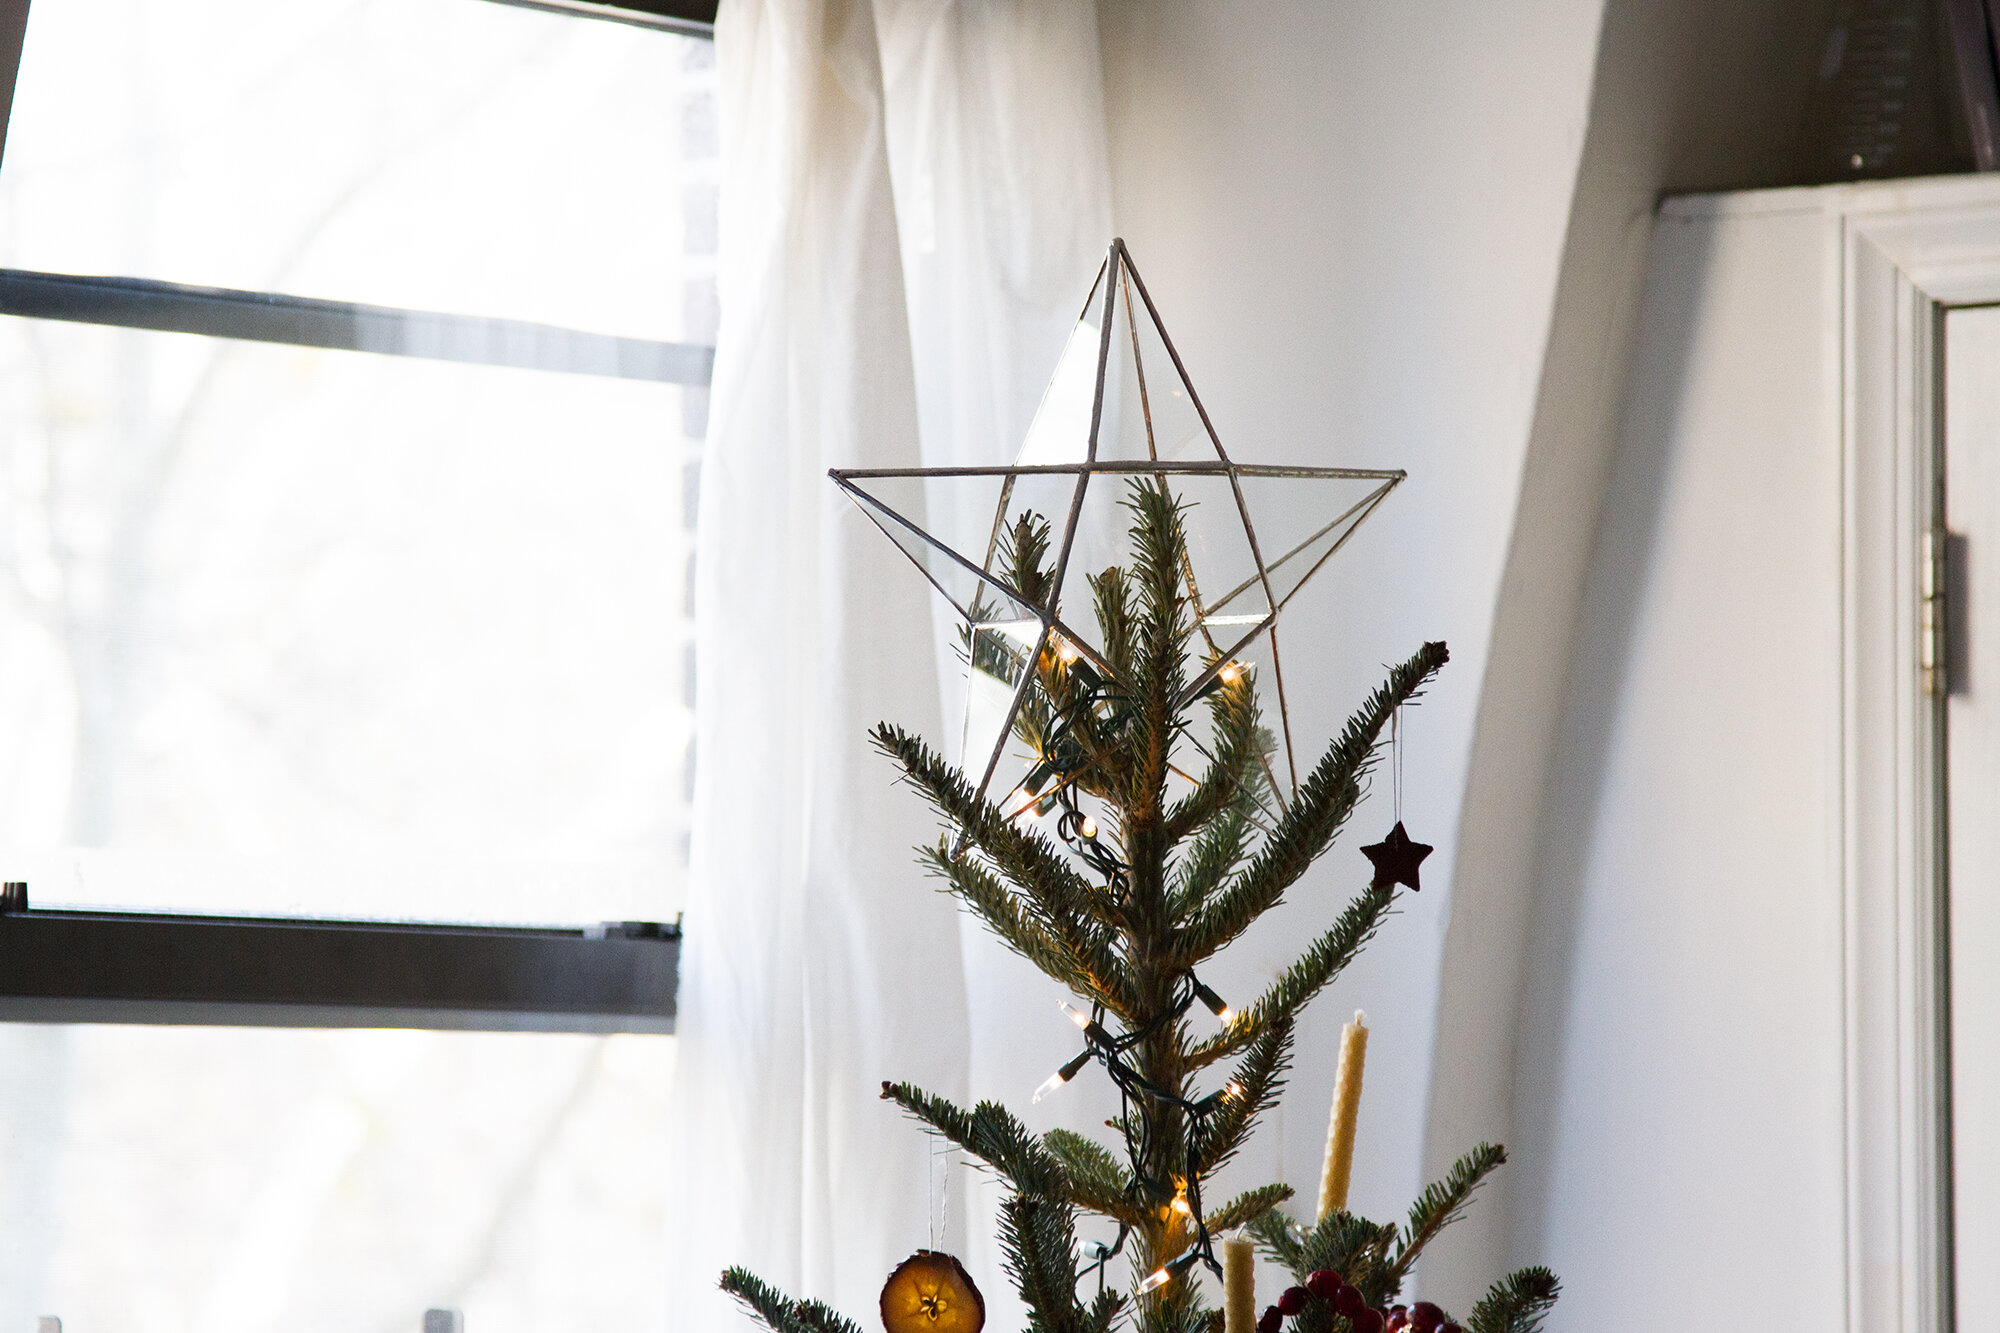 clutter free holiday decorations | reading my tea leaves